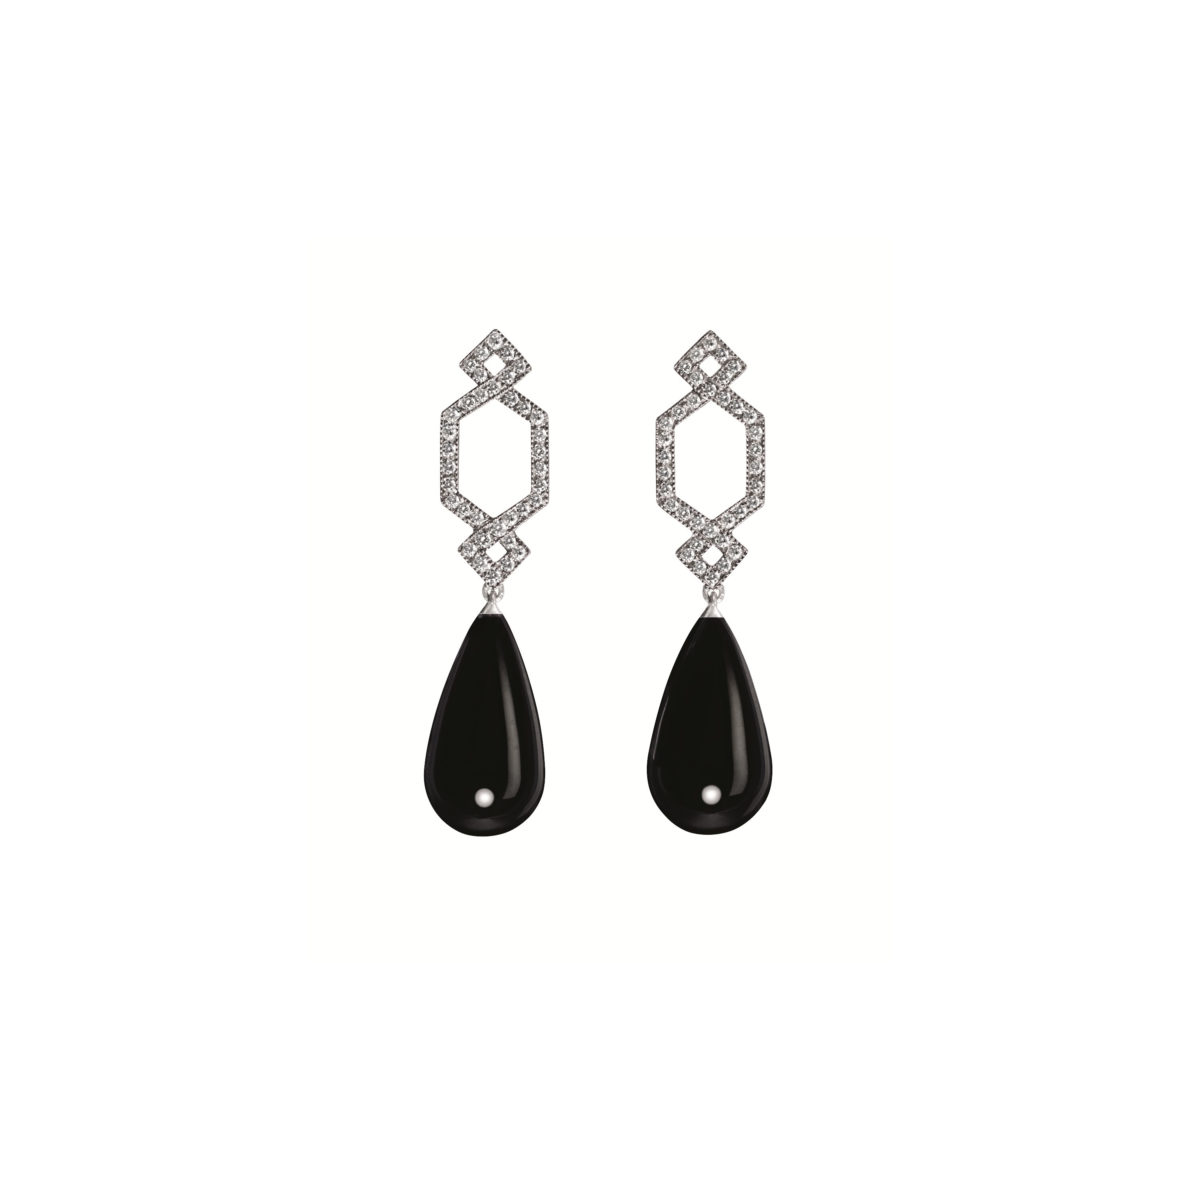 Ivanka Trump Short Diamond Crossover Earrings With Black Onyx Drops besides Oscar Heyman also John Keal Magazine Side Table With Drawer In Mahogany By John Keal For Brown Saltman Ca 181747 moreover Cash For Jewelry We Buy Designer Jewelry besides Bee Ring 799. on designer oscar heyman jewelry